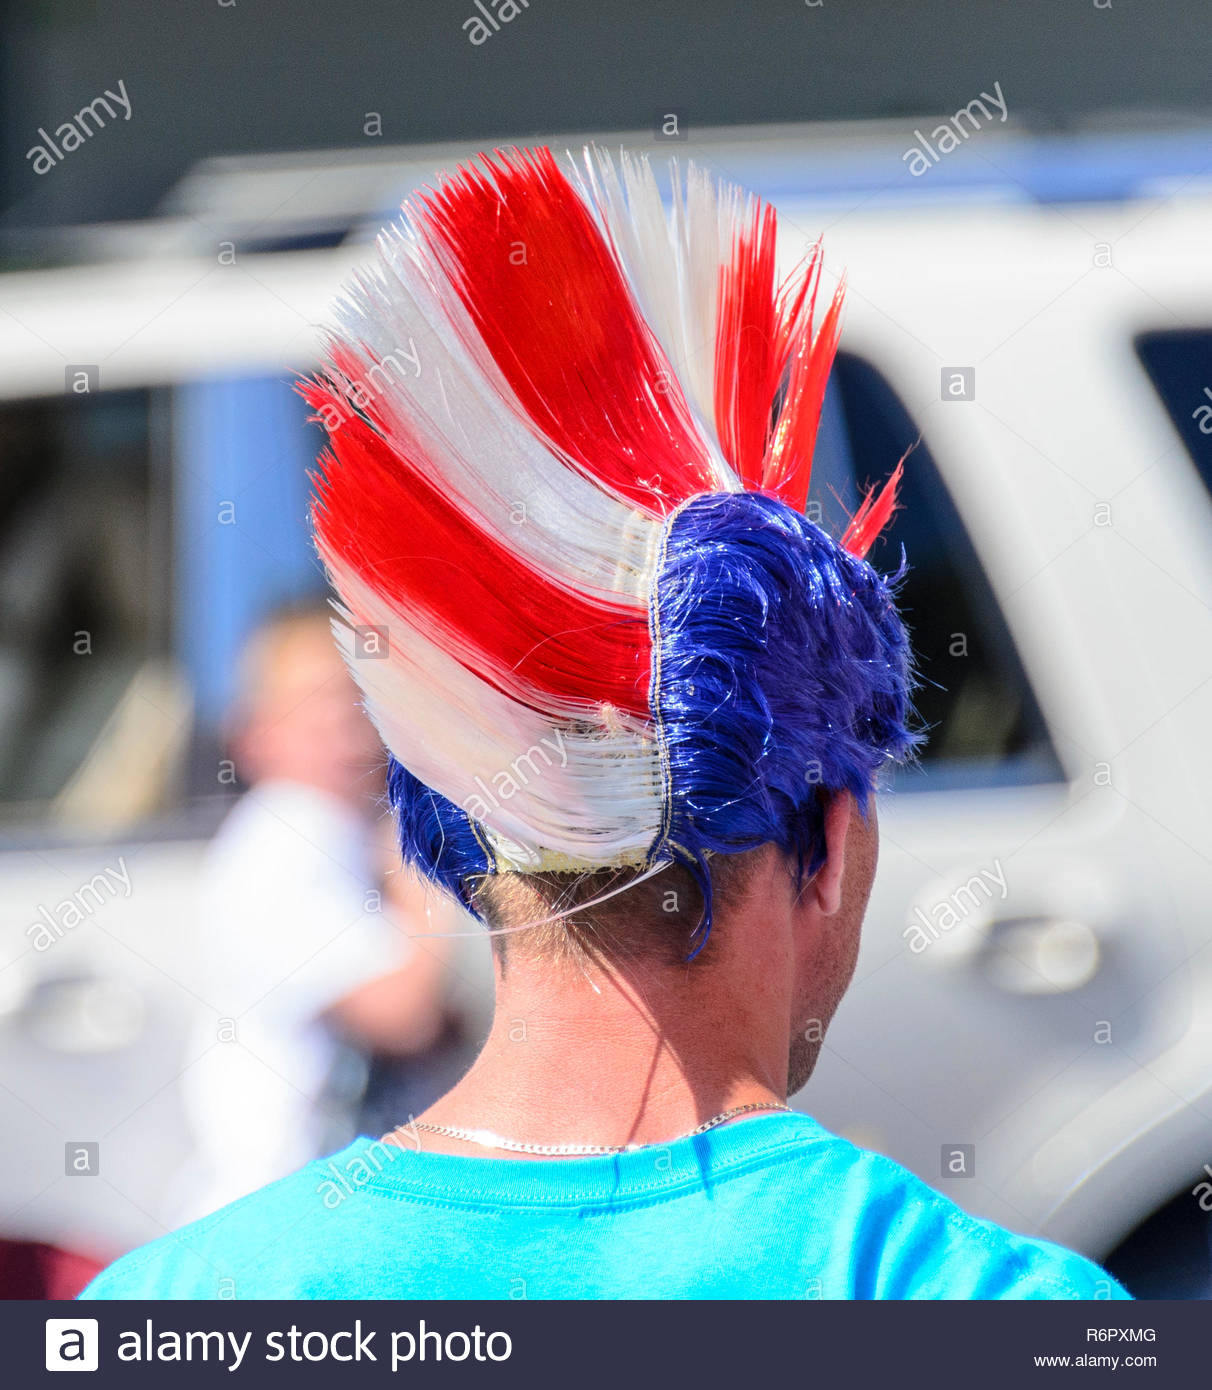 Bristol, Rhode Island, USA - July 4, 2011: Red, white and blue mohawk spectator headgear at parade - Stock Image